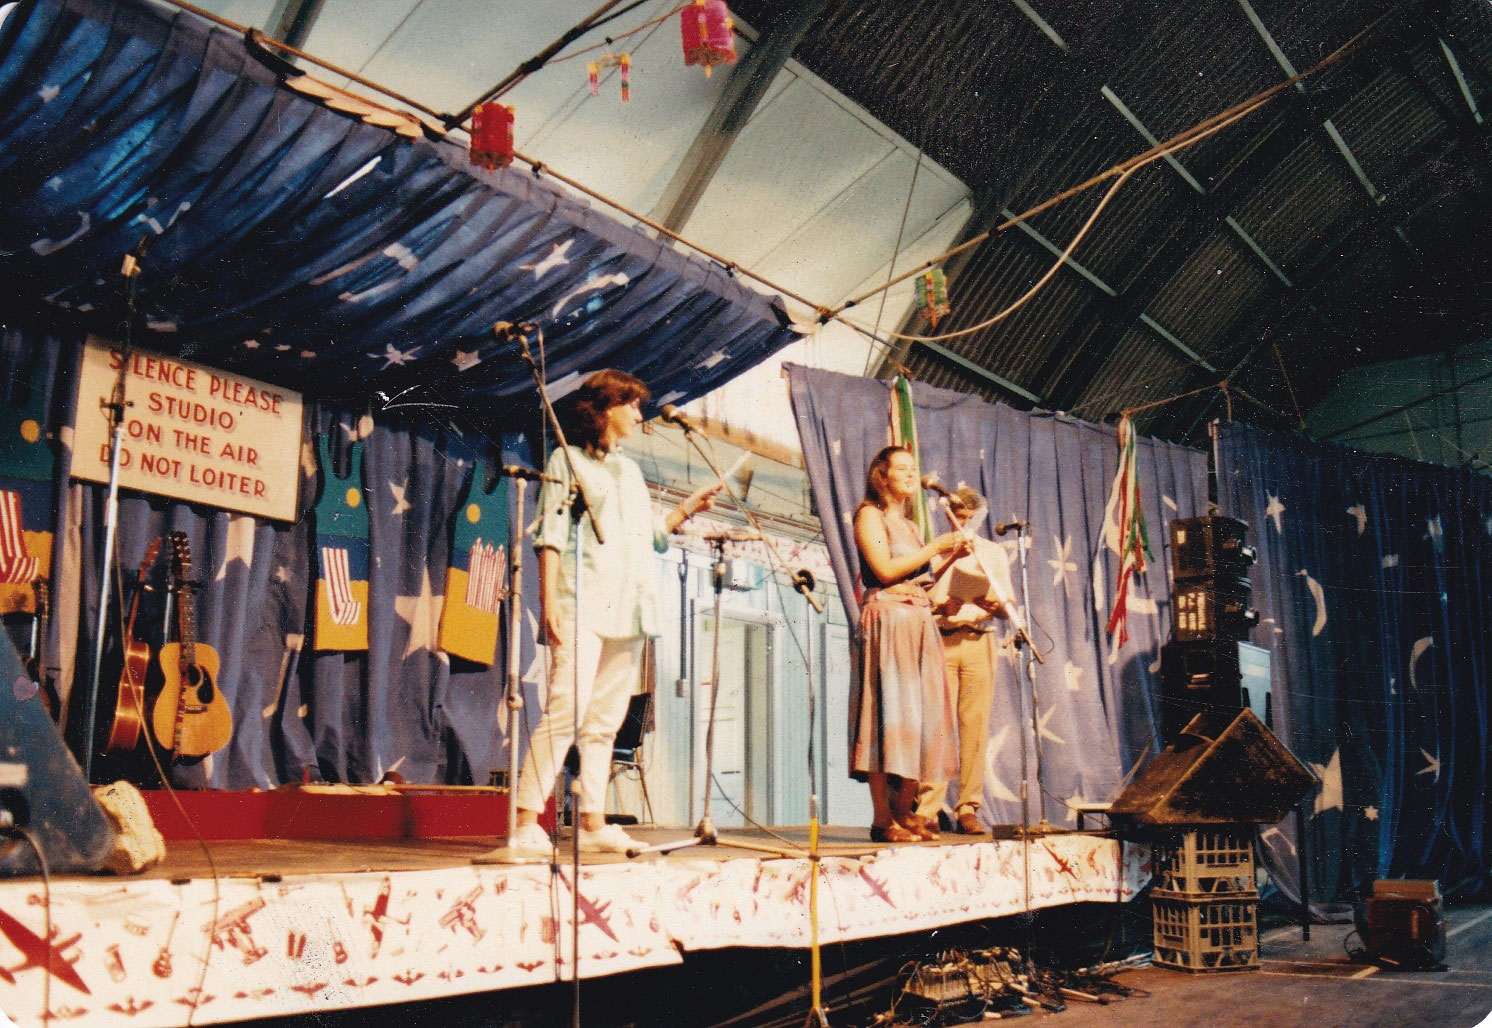 HR_CMYK_12.-The-Bathers-Beach-Glee-Club-1986,-with-Beverley-Hill,-Robyn-Johnston-and-Scott-Wise,-courtesy-Scott-Wise.jpg